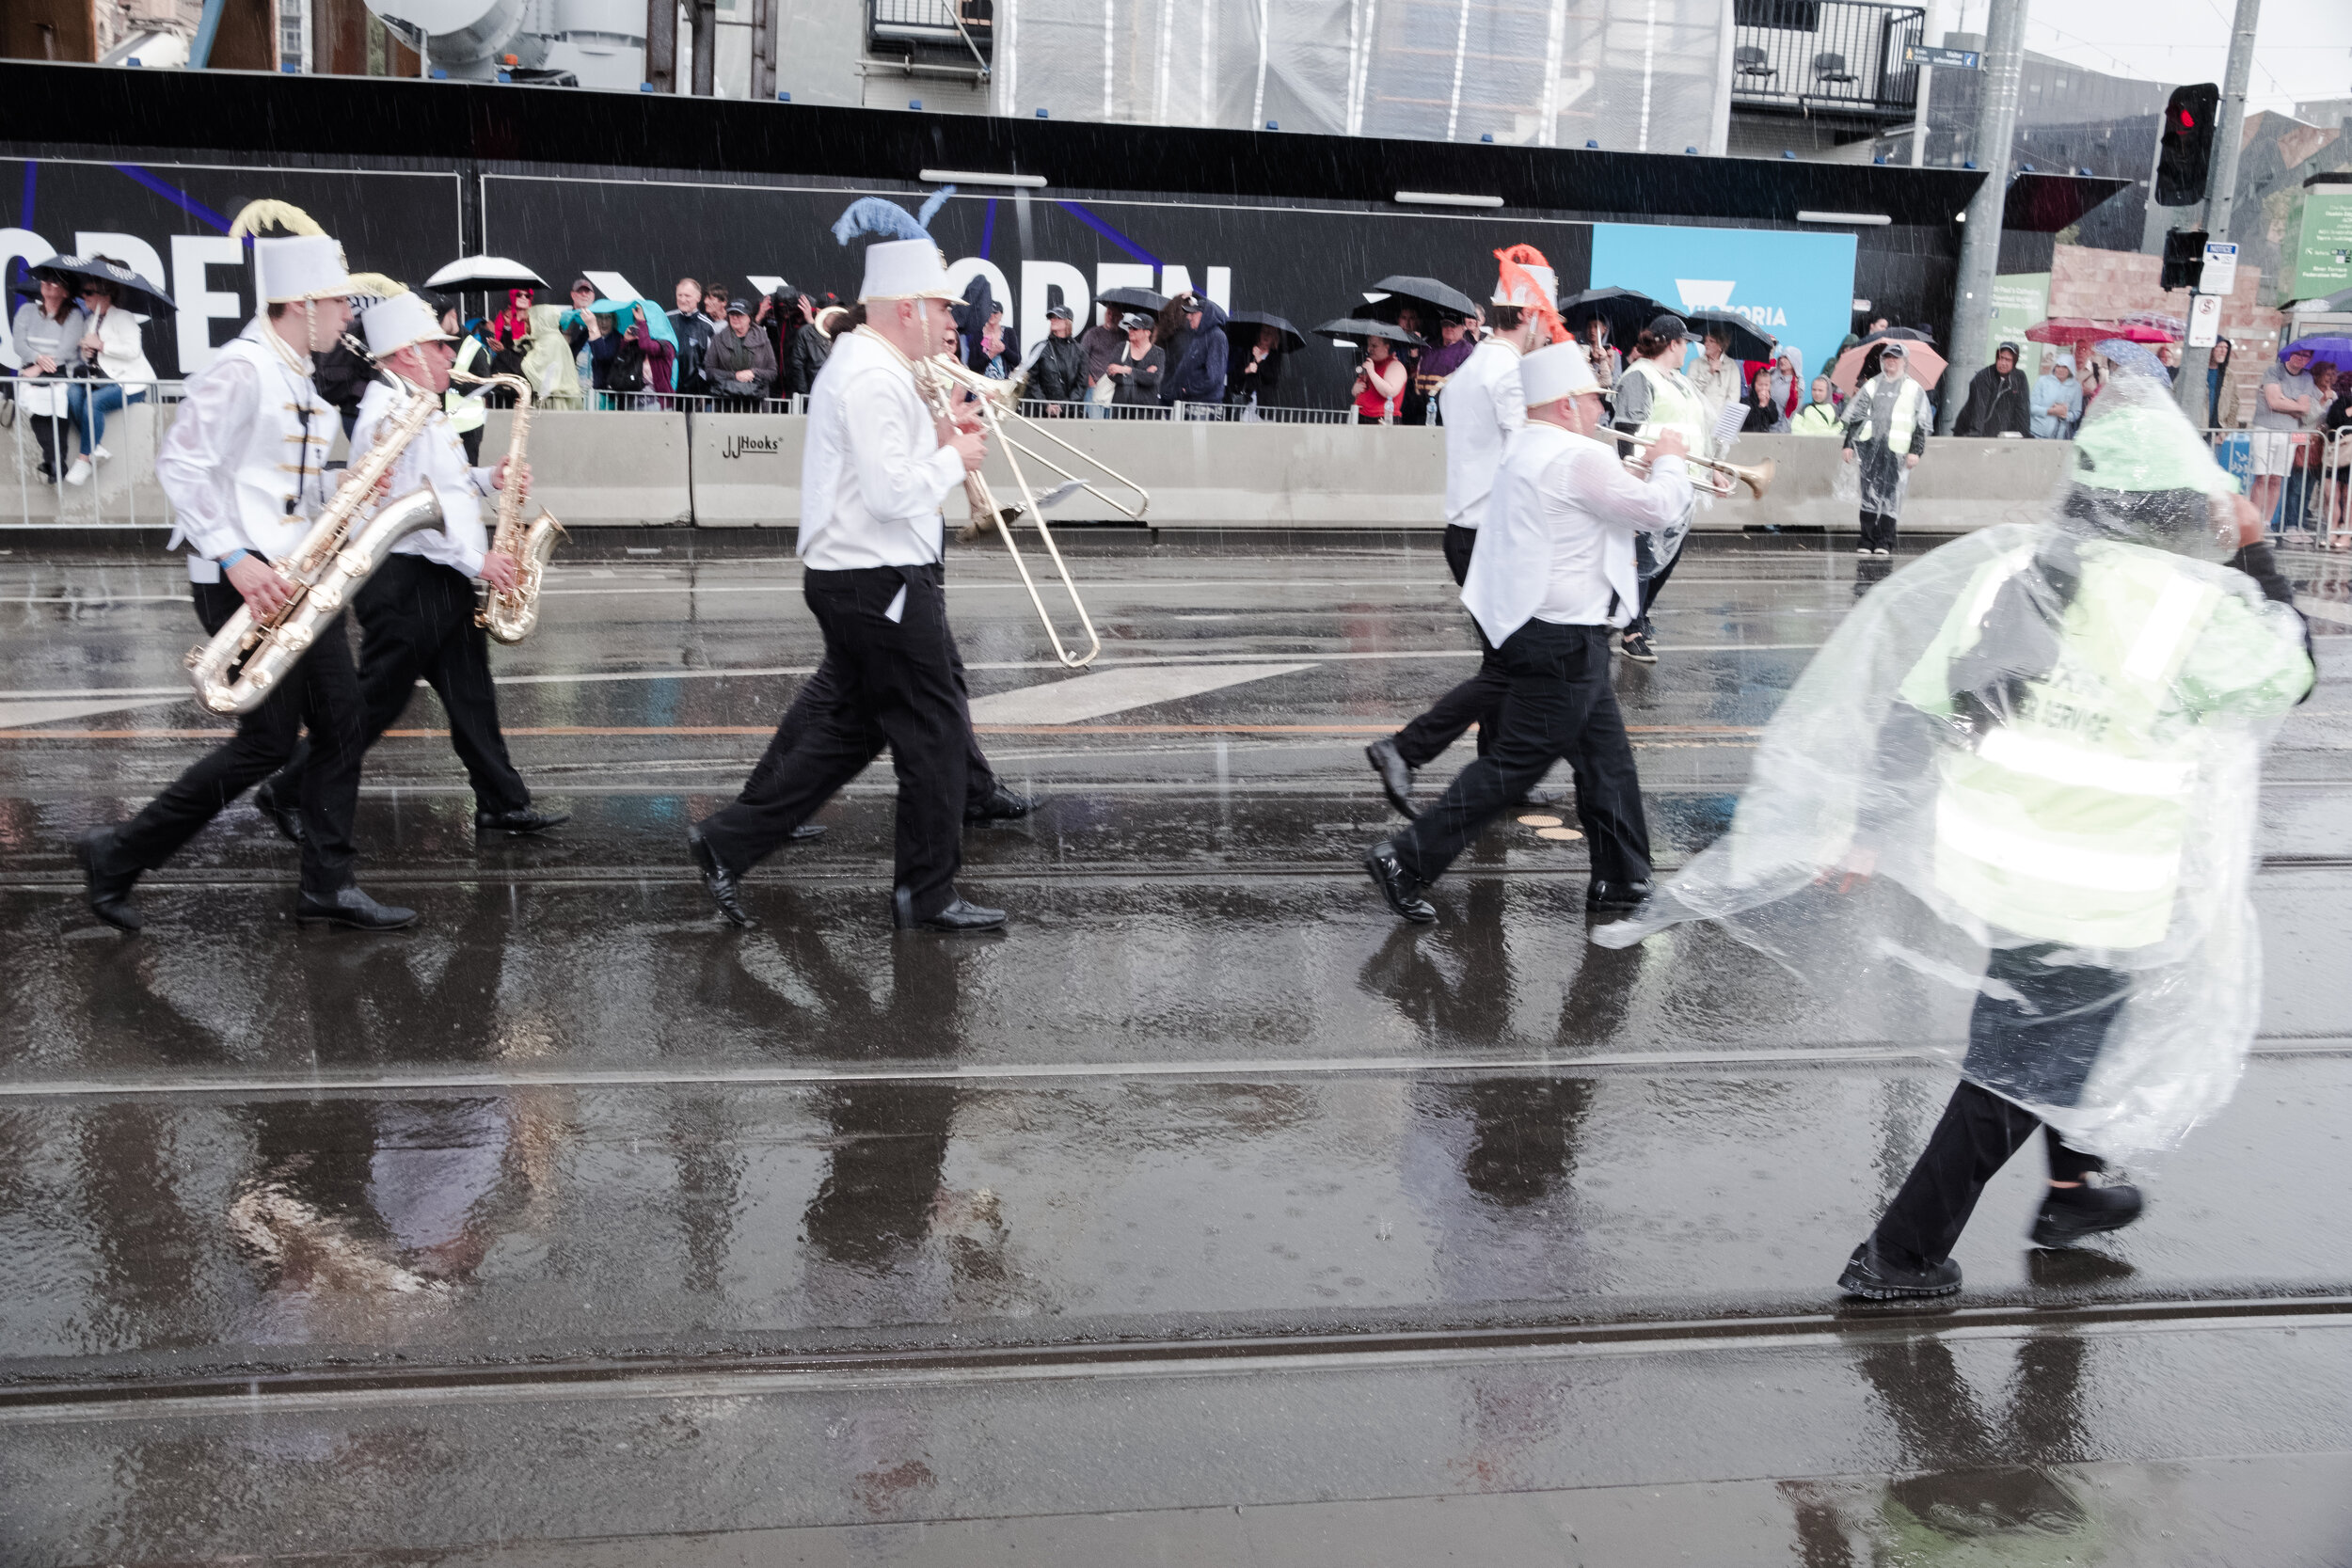 Performers and staff rush through the parade to escape heavy rain. (Photo: Jeremy Gan)